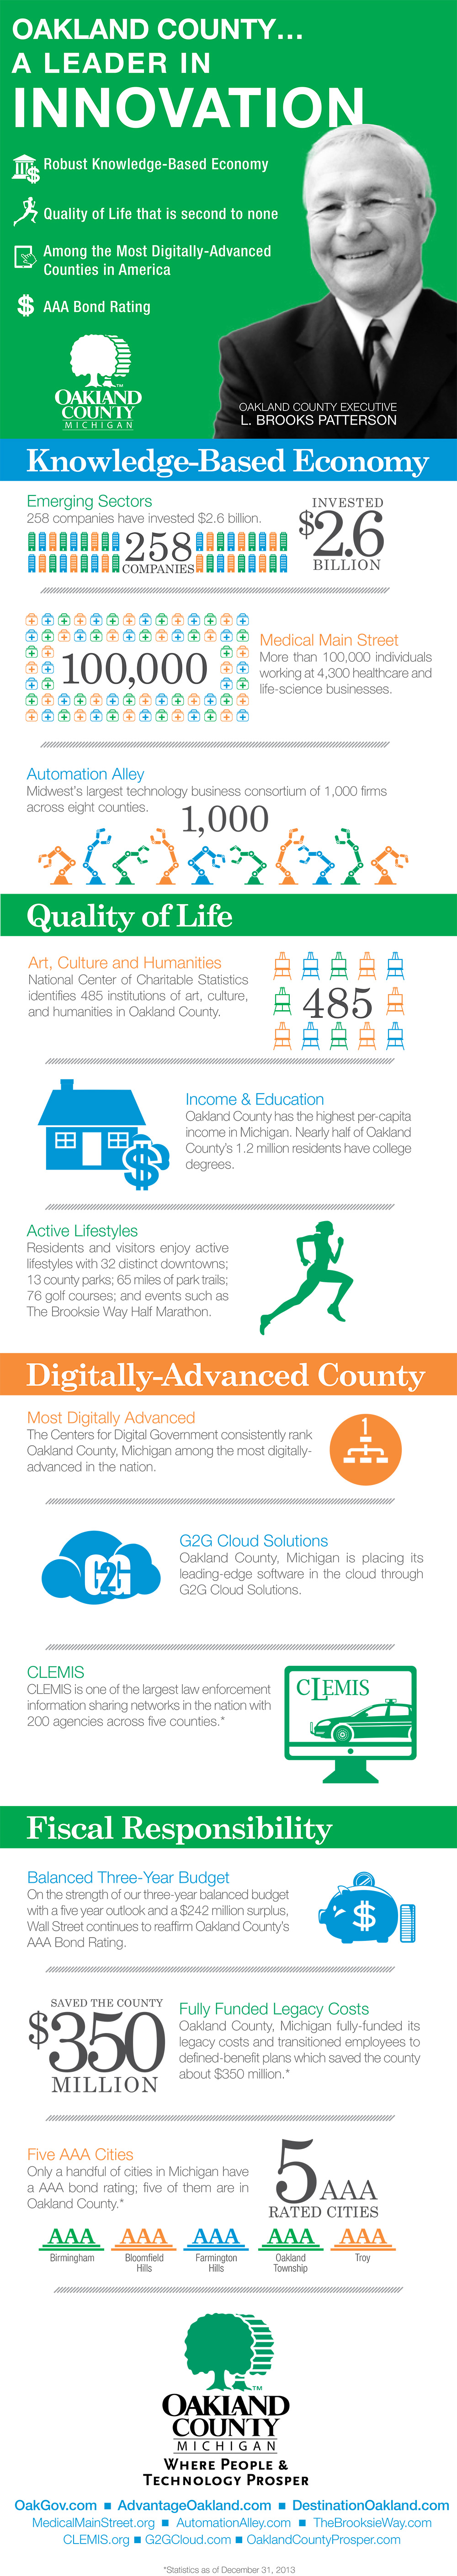 Oakland County Leading Innovation Infographic